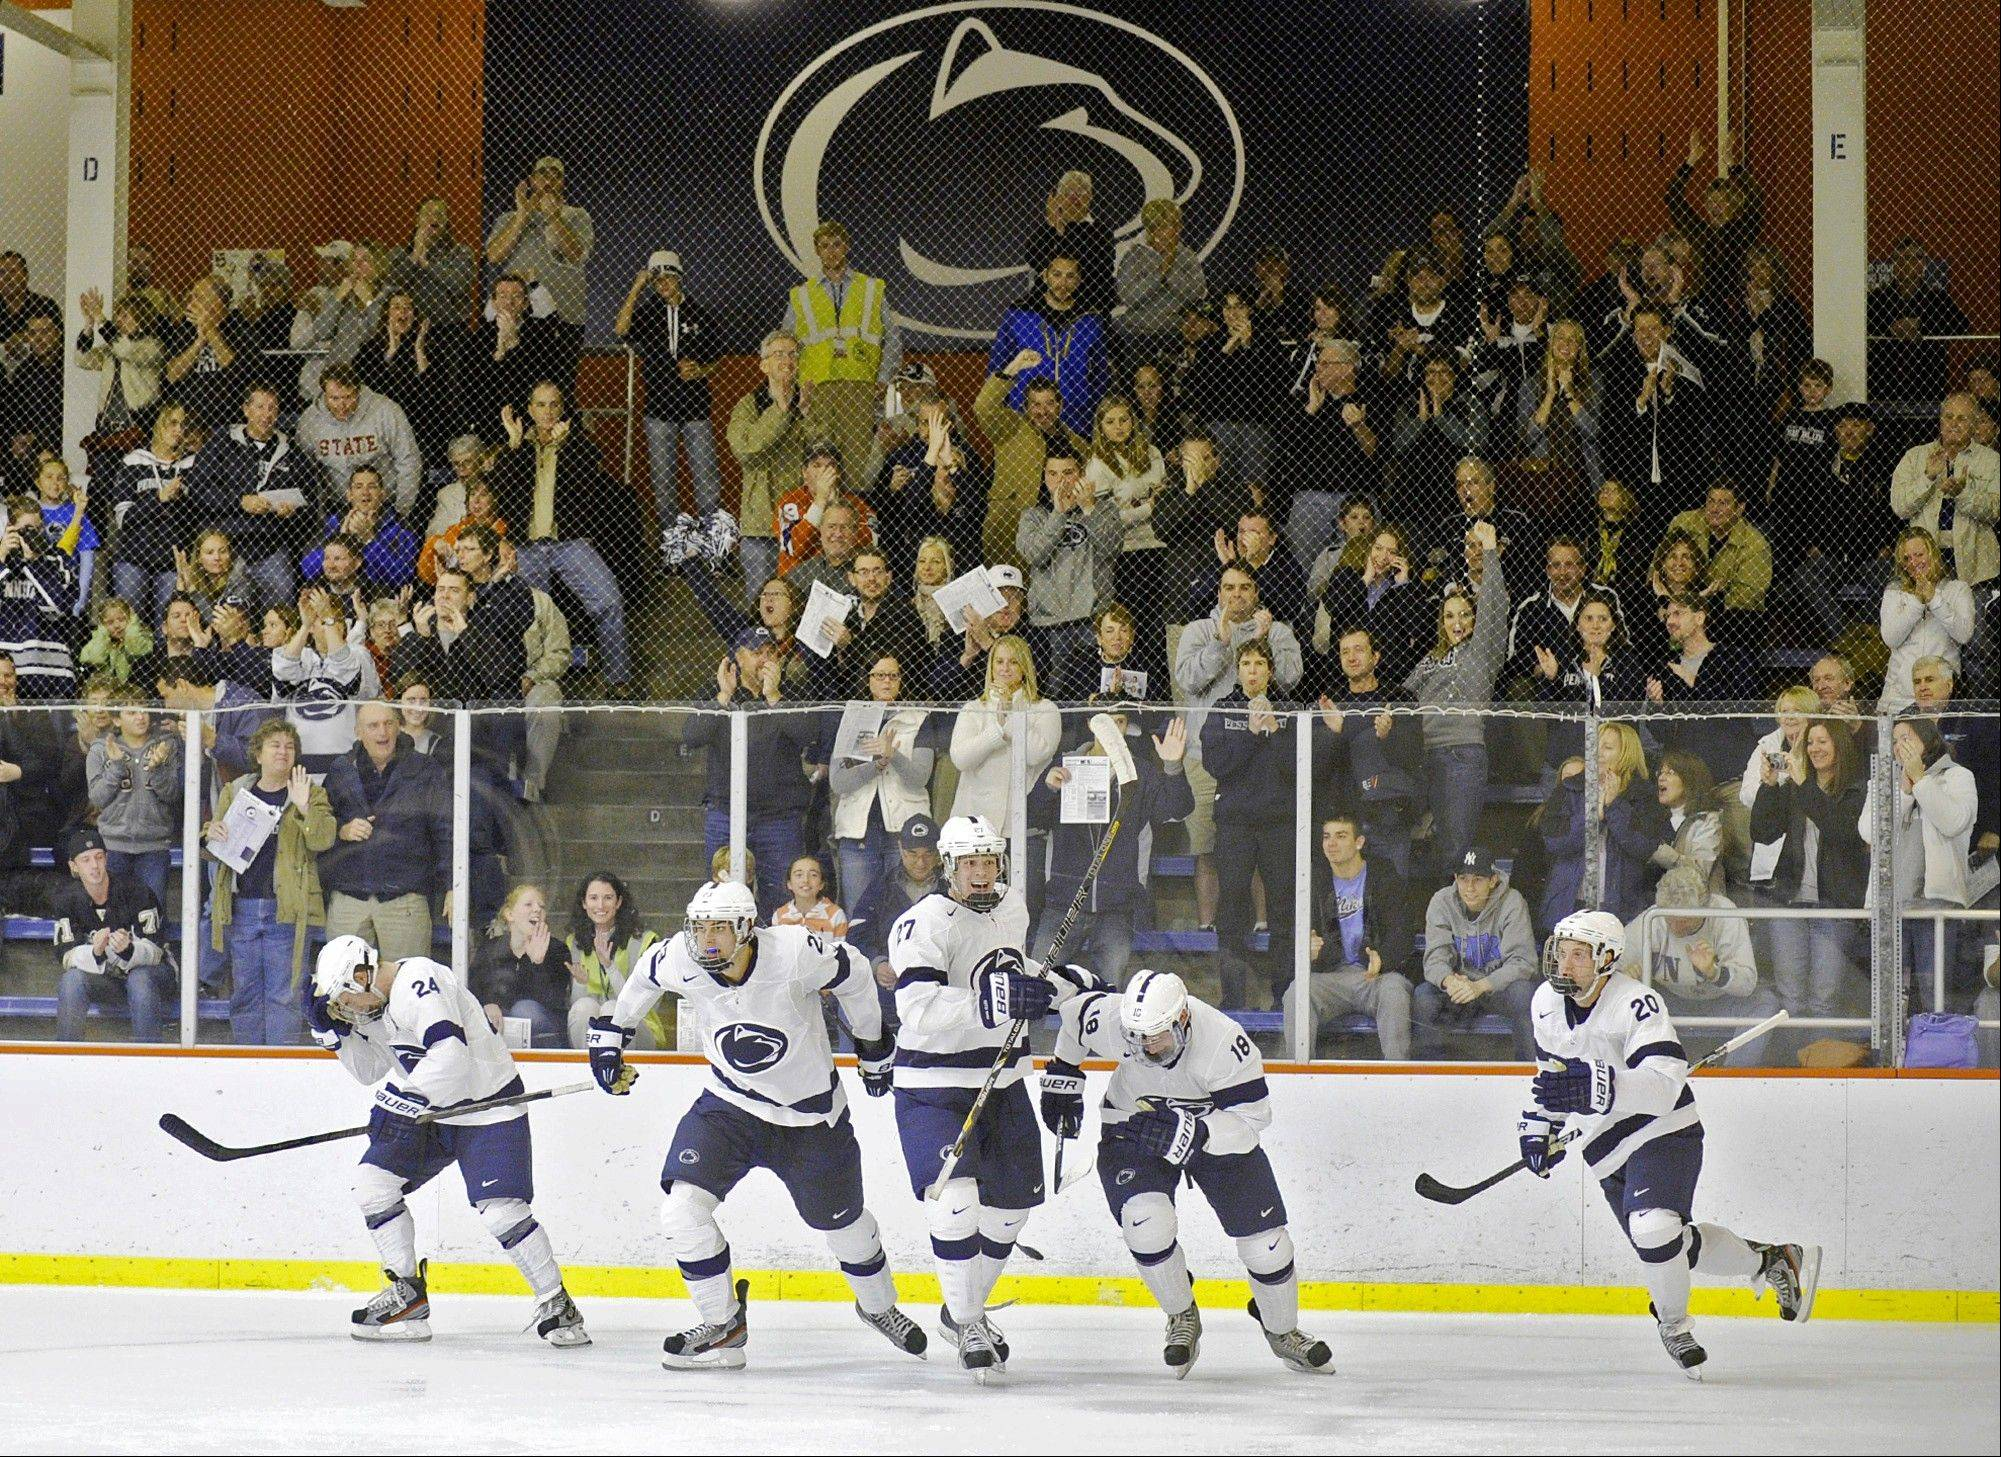 Penn State players celebrate their first goal of the game against American International College don Friday at Greenberg Ice Pavilion in State College, Pa.